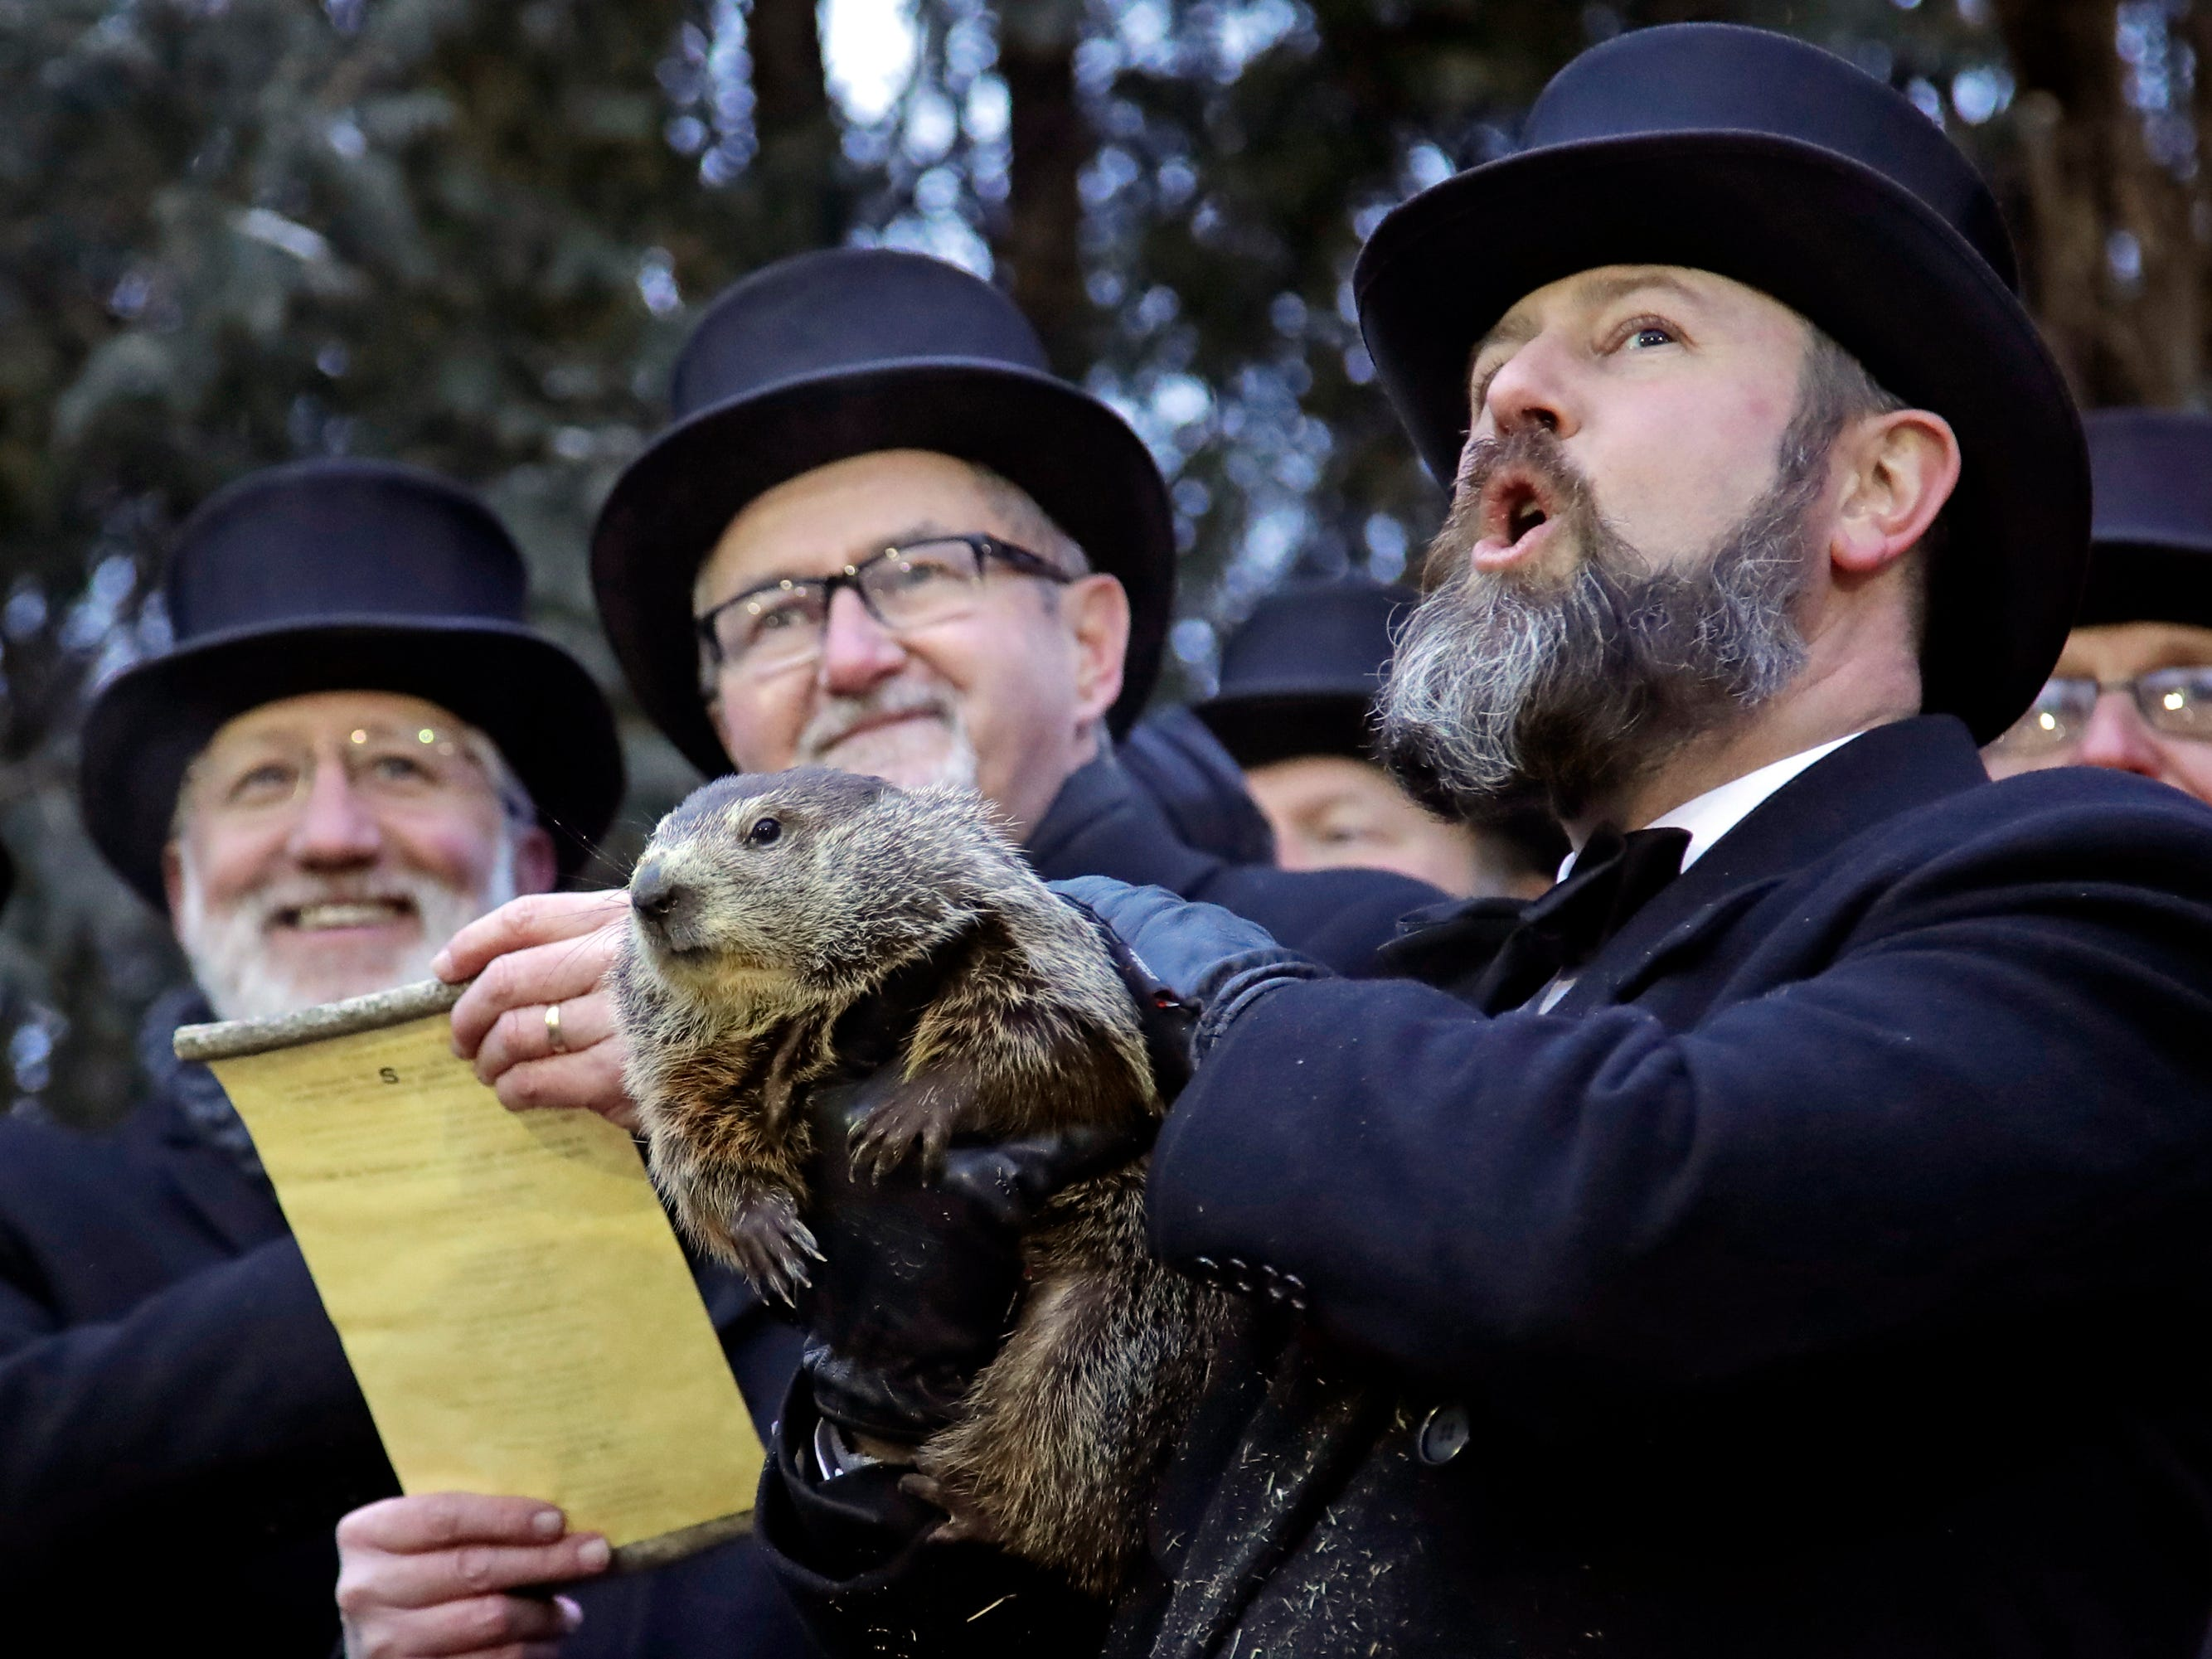 Groundhog Club co-handler Al Dereume, right, holds Punxsutawney Phil, the weather prognosticating groundhog, during the 133rd celebration of Groundhog Day on Gobbler's Knob in Punxsutawney, Pa. Saturday, Feb. 2, 2019.